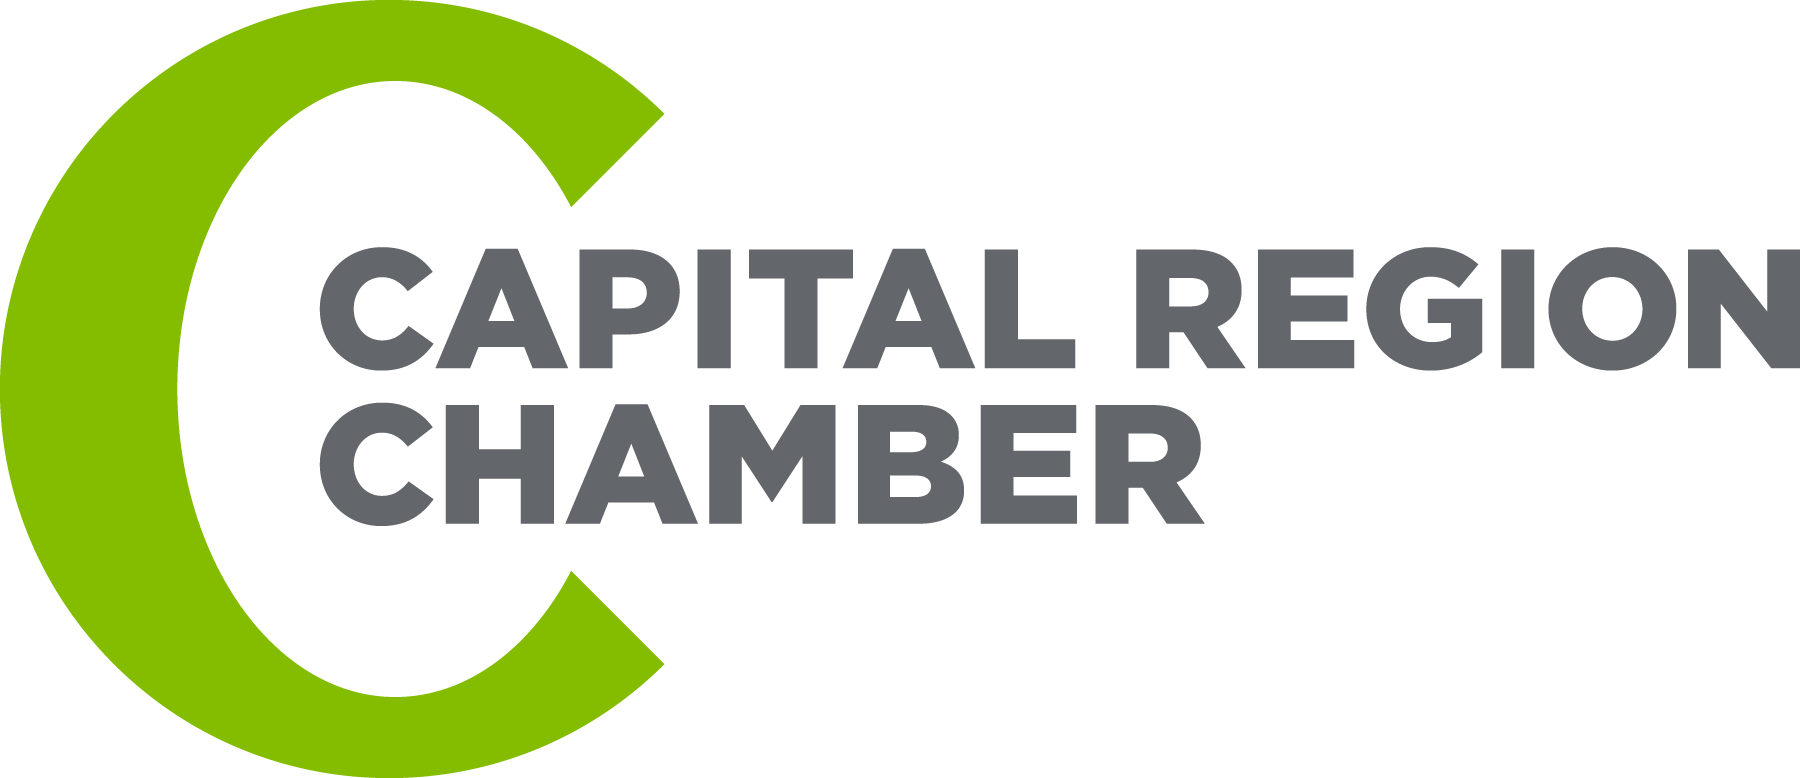 Capital Region Chamber of Commerce Logo